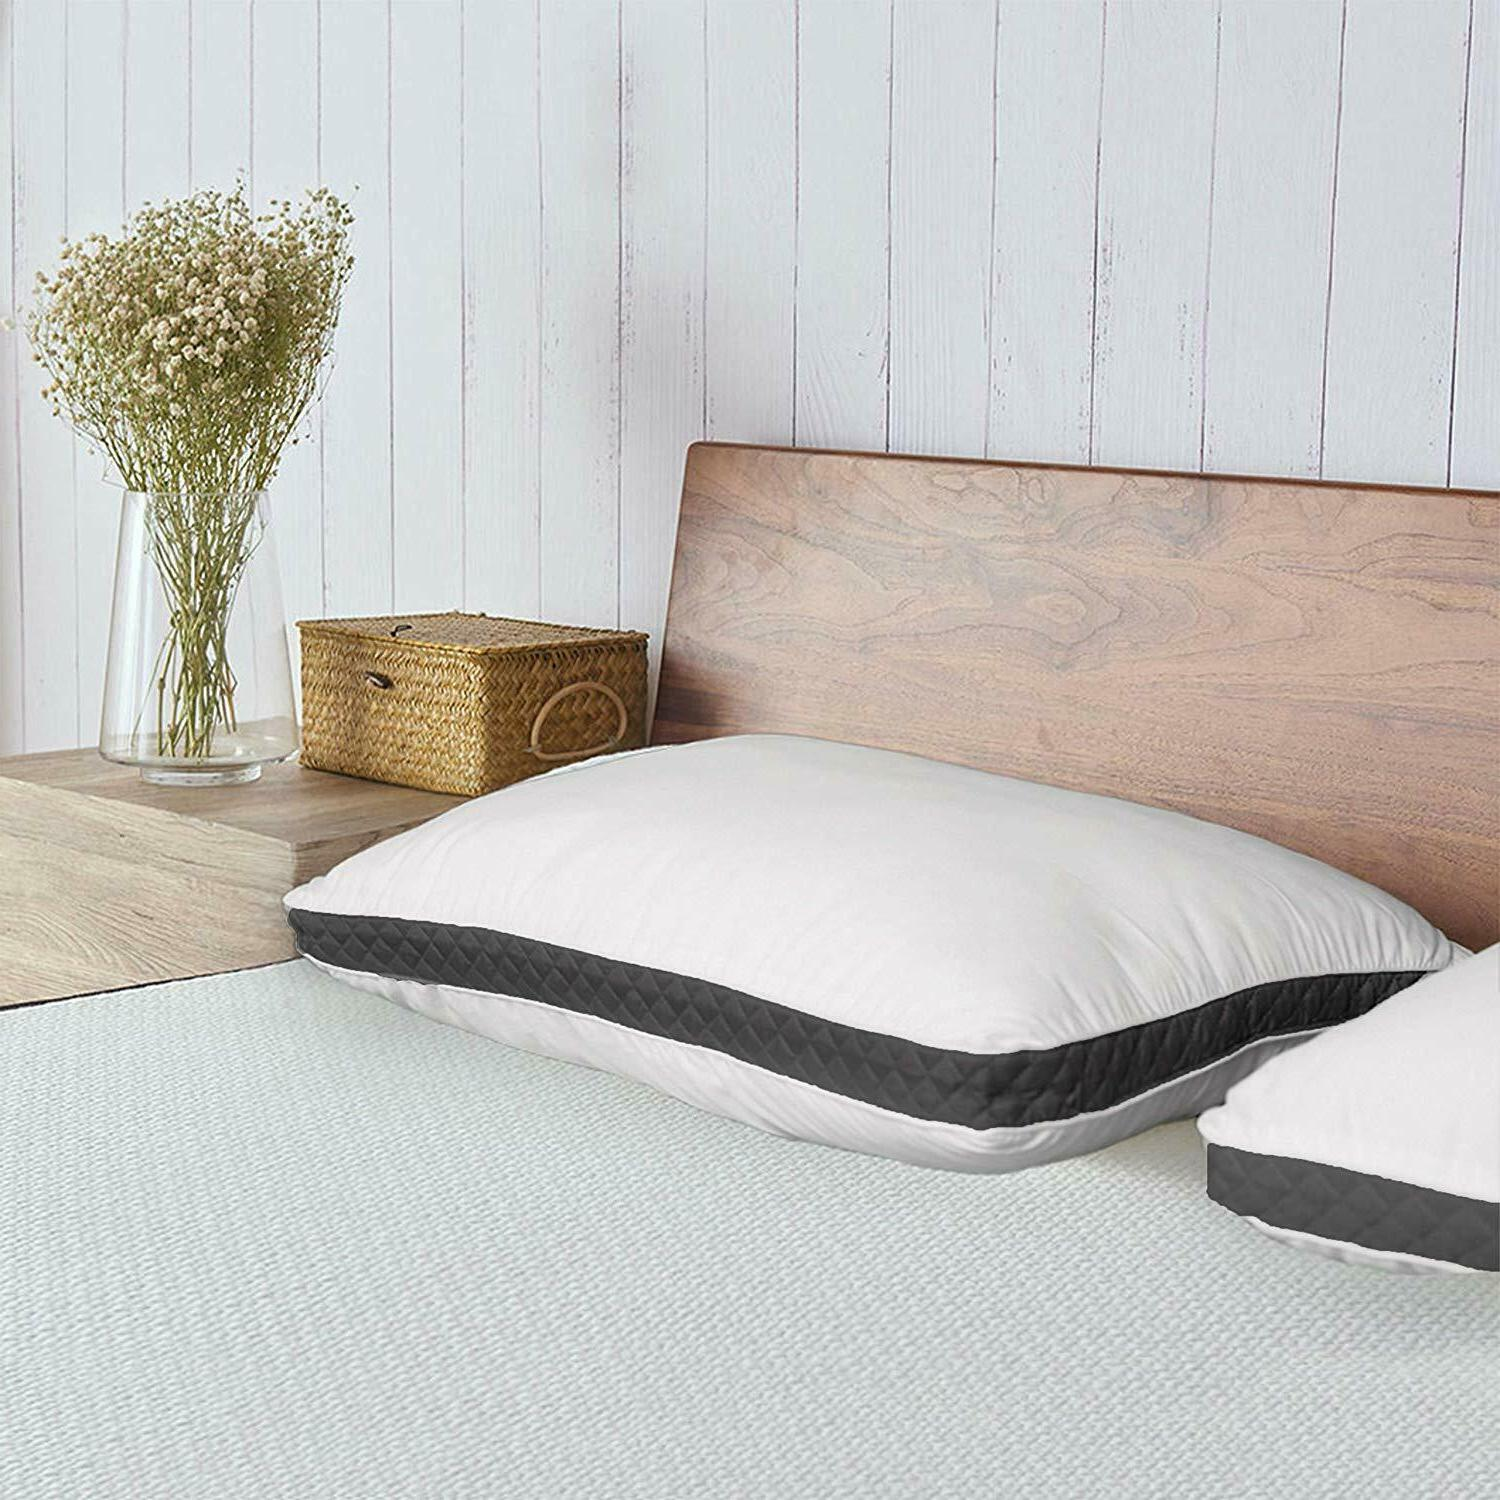 Gusseted Quilted Back Sleepers Set 2 Queen King Size